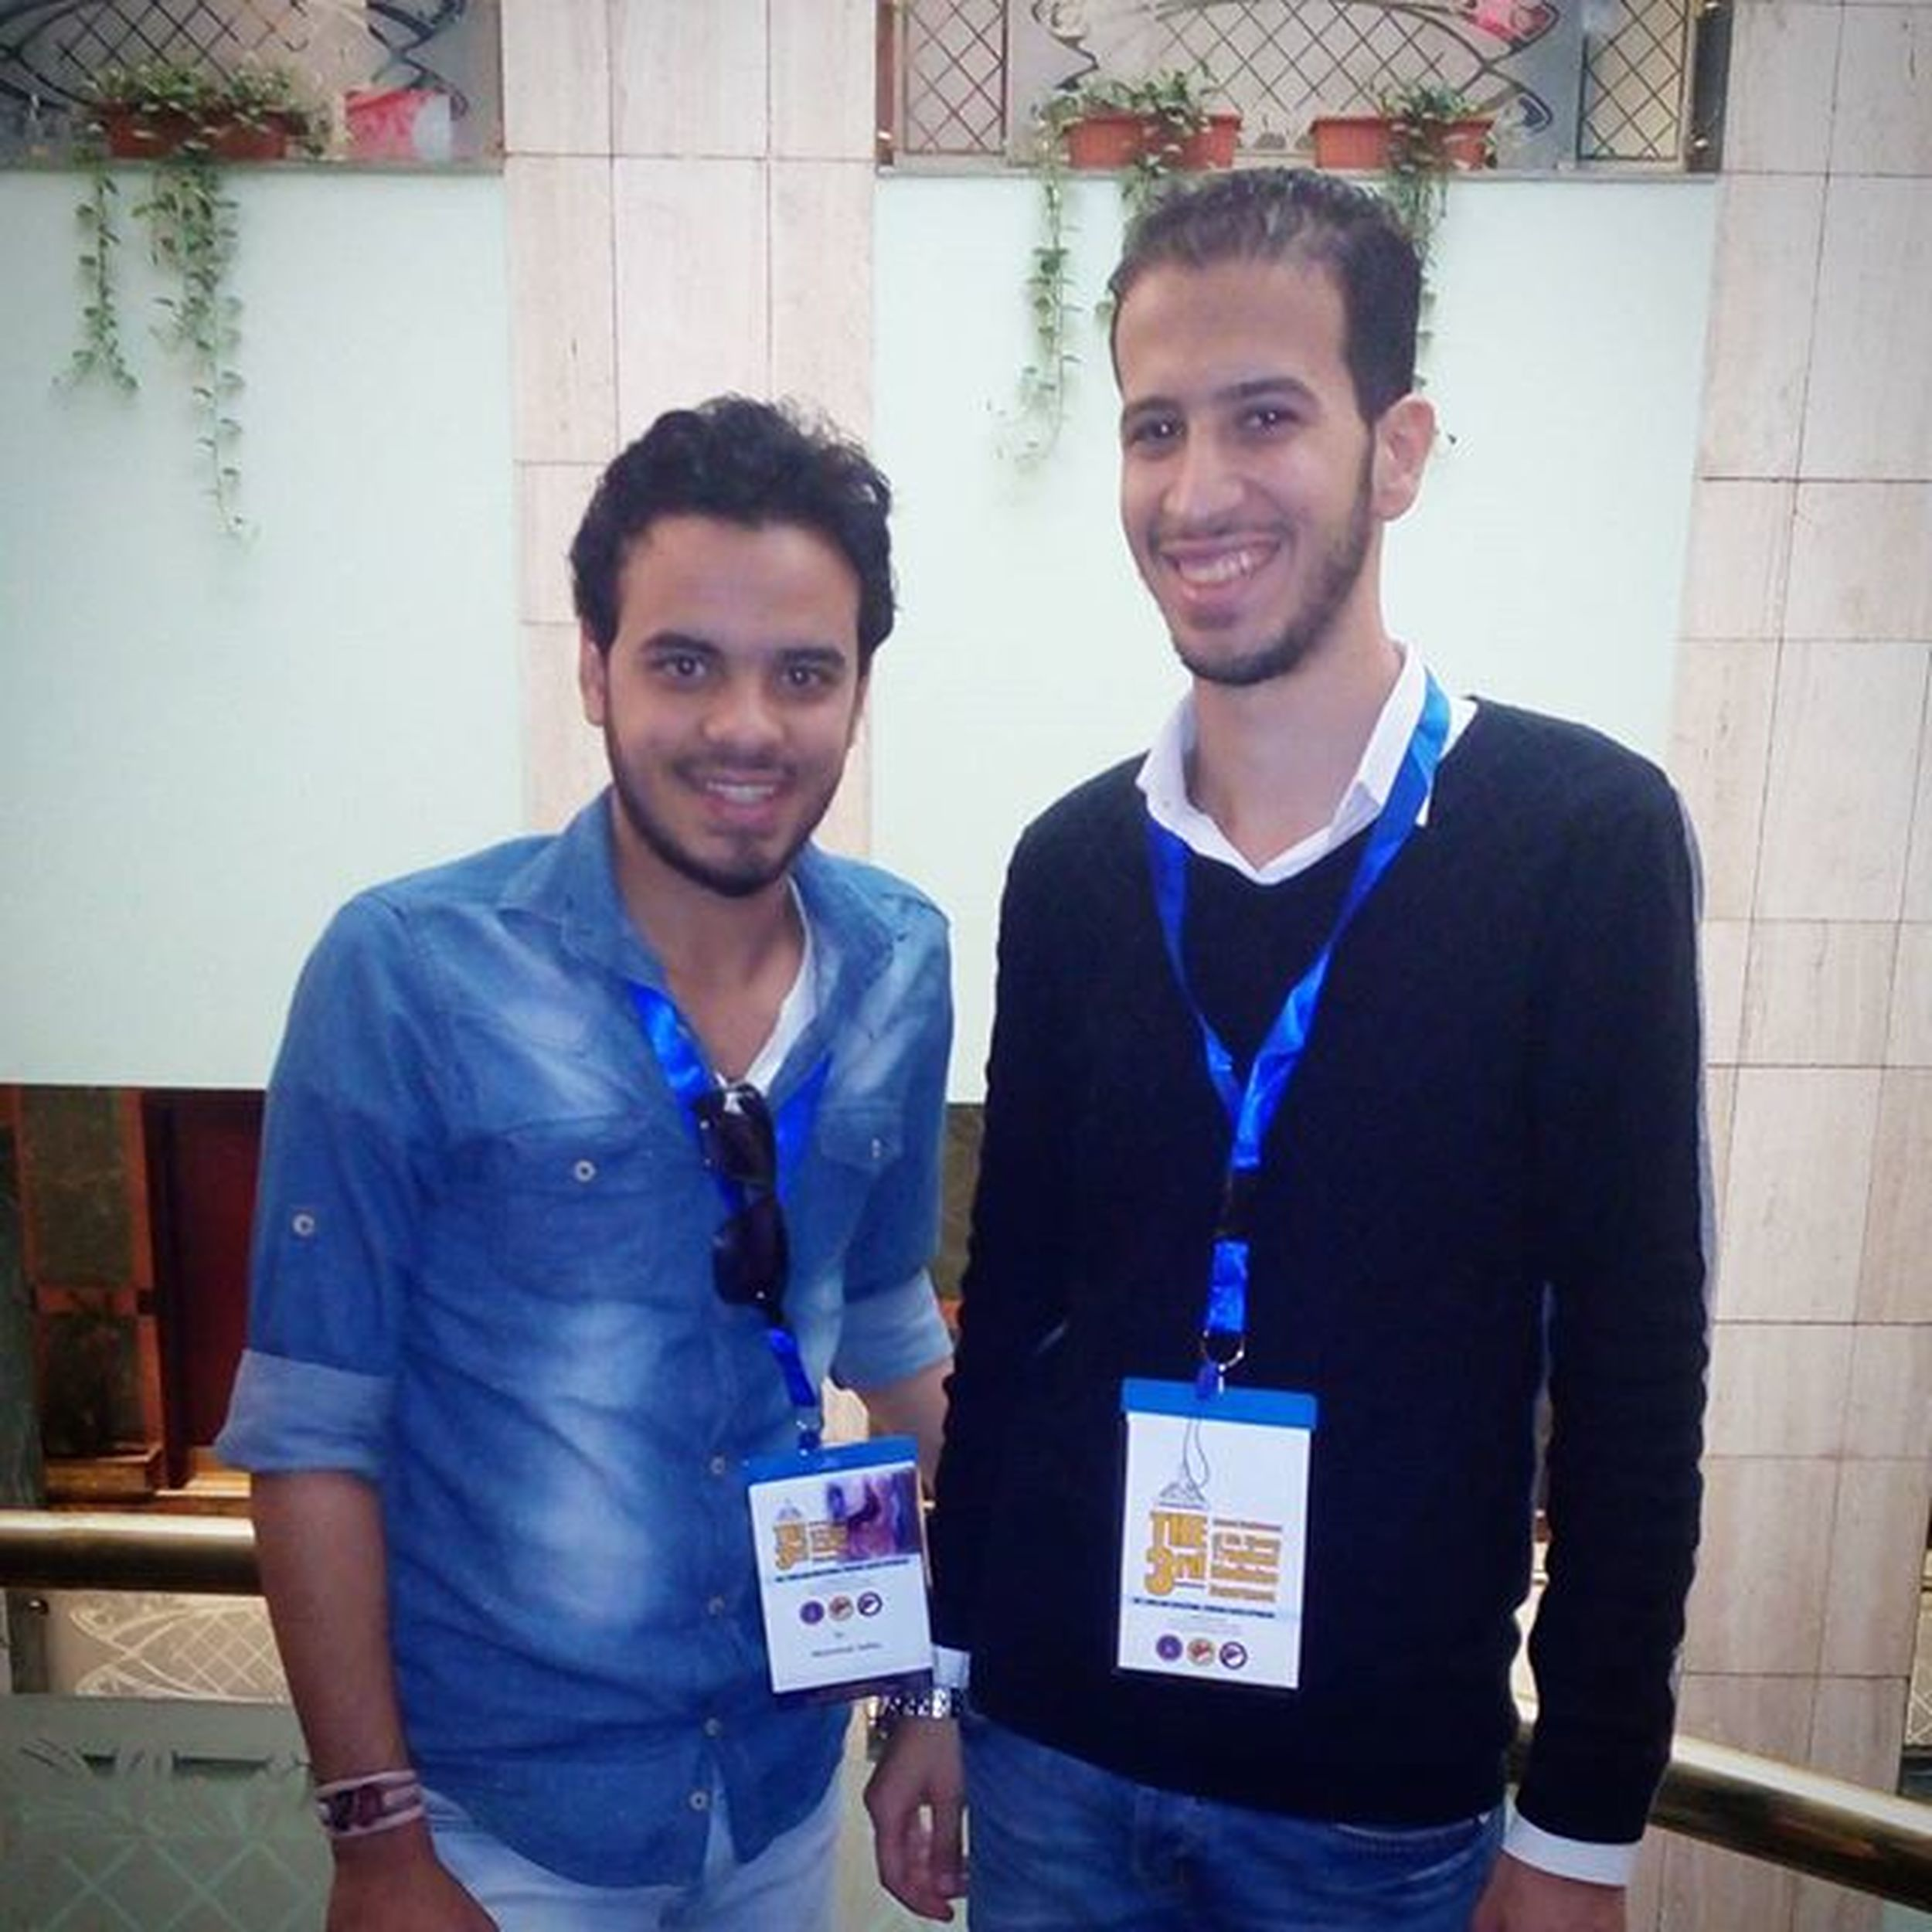 3rdannualconference Ainshams Tropicaldepartment Hotel Friend Nice_shot Smile Registration Package Instahappy Instafun